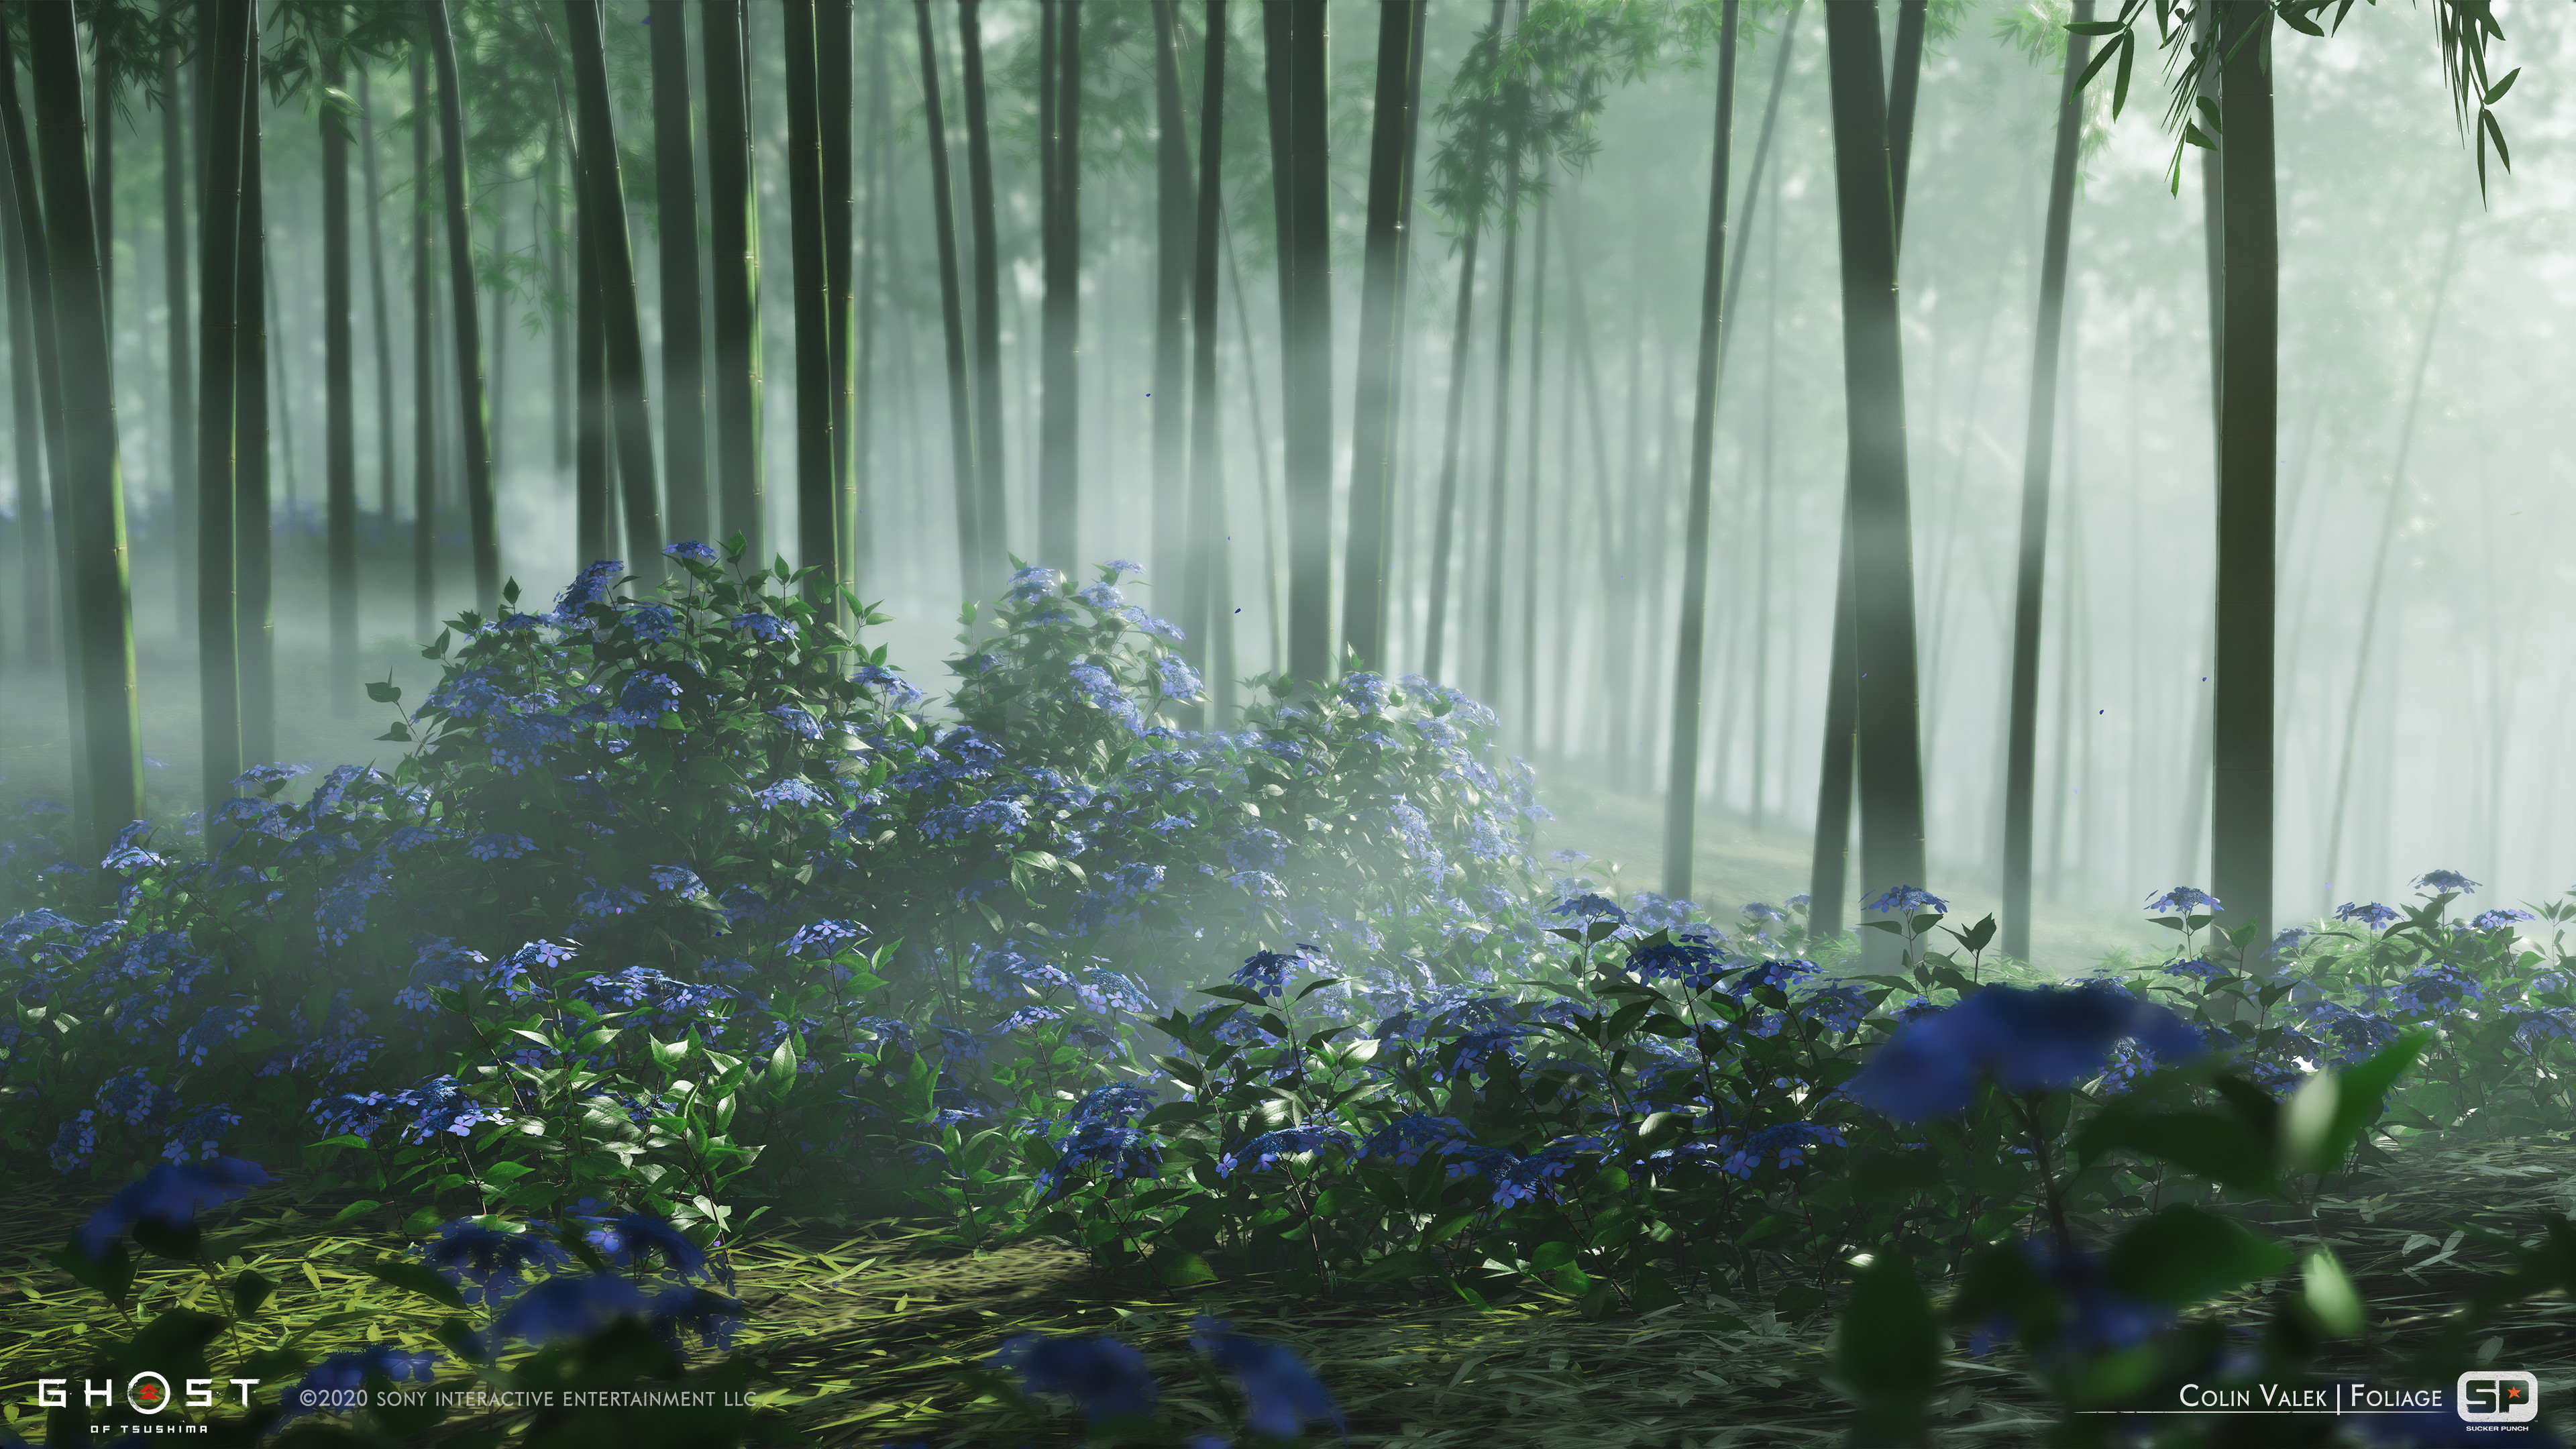 Blue Hydrangeas used for the Uchitsune mission